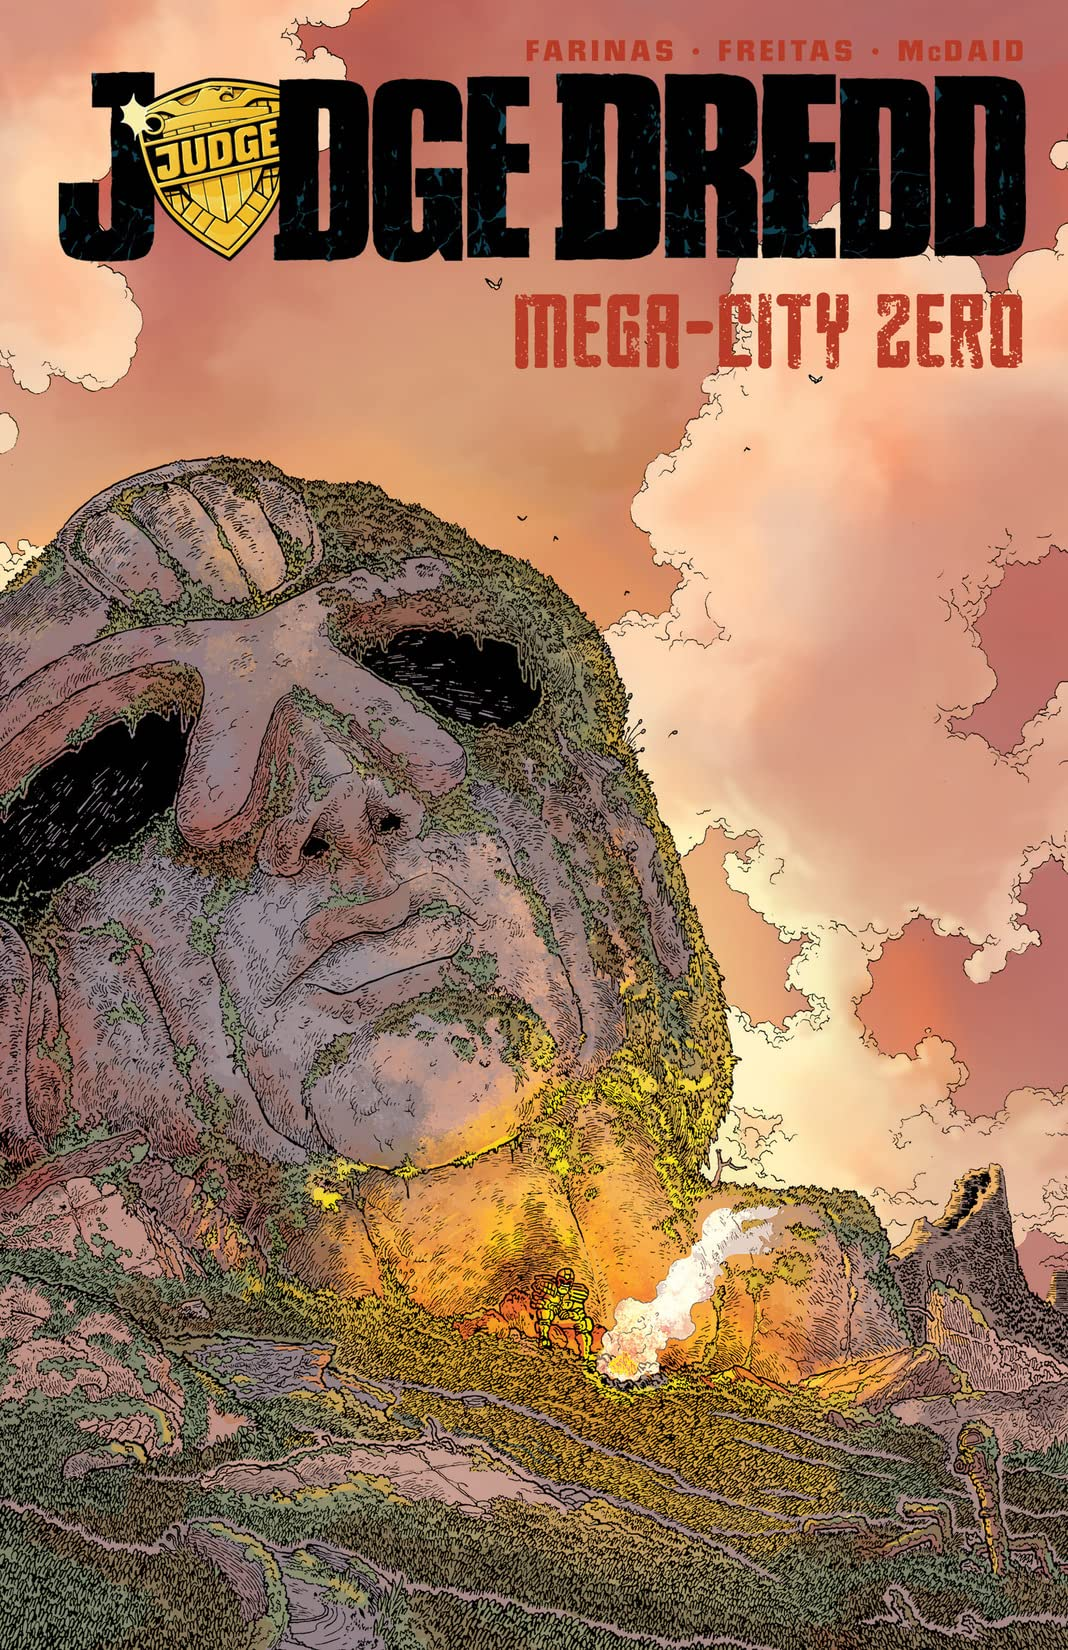 Judge Dredd: Mega-City Zero Vol. 1